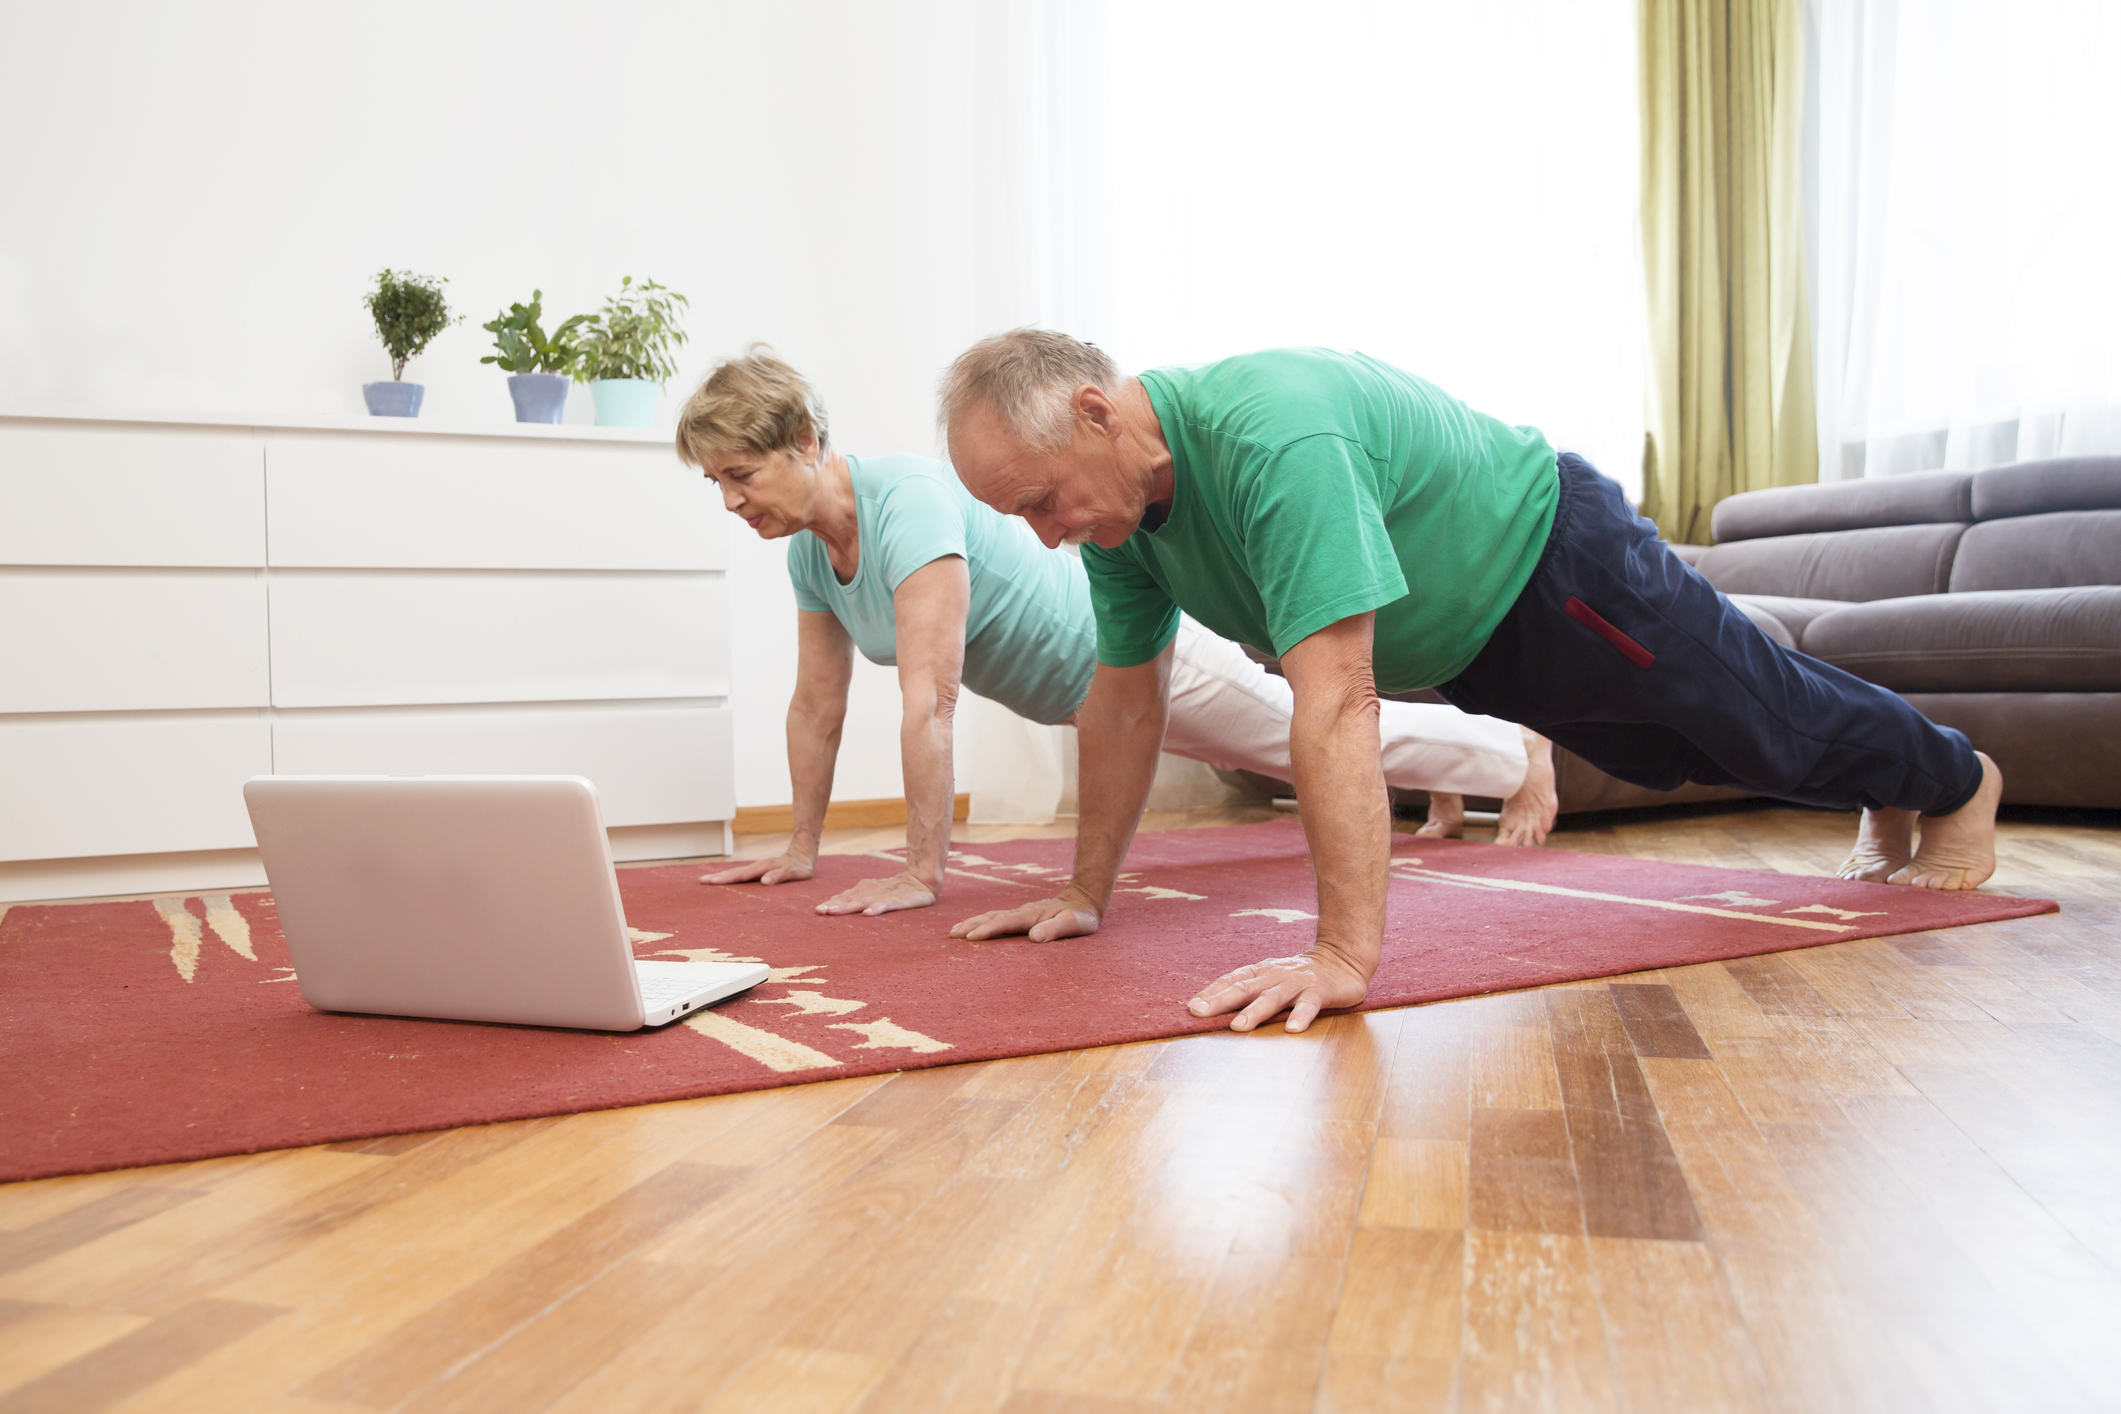 Exercises While Traveling and Staying in a Vacation Rental